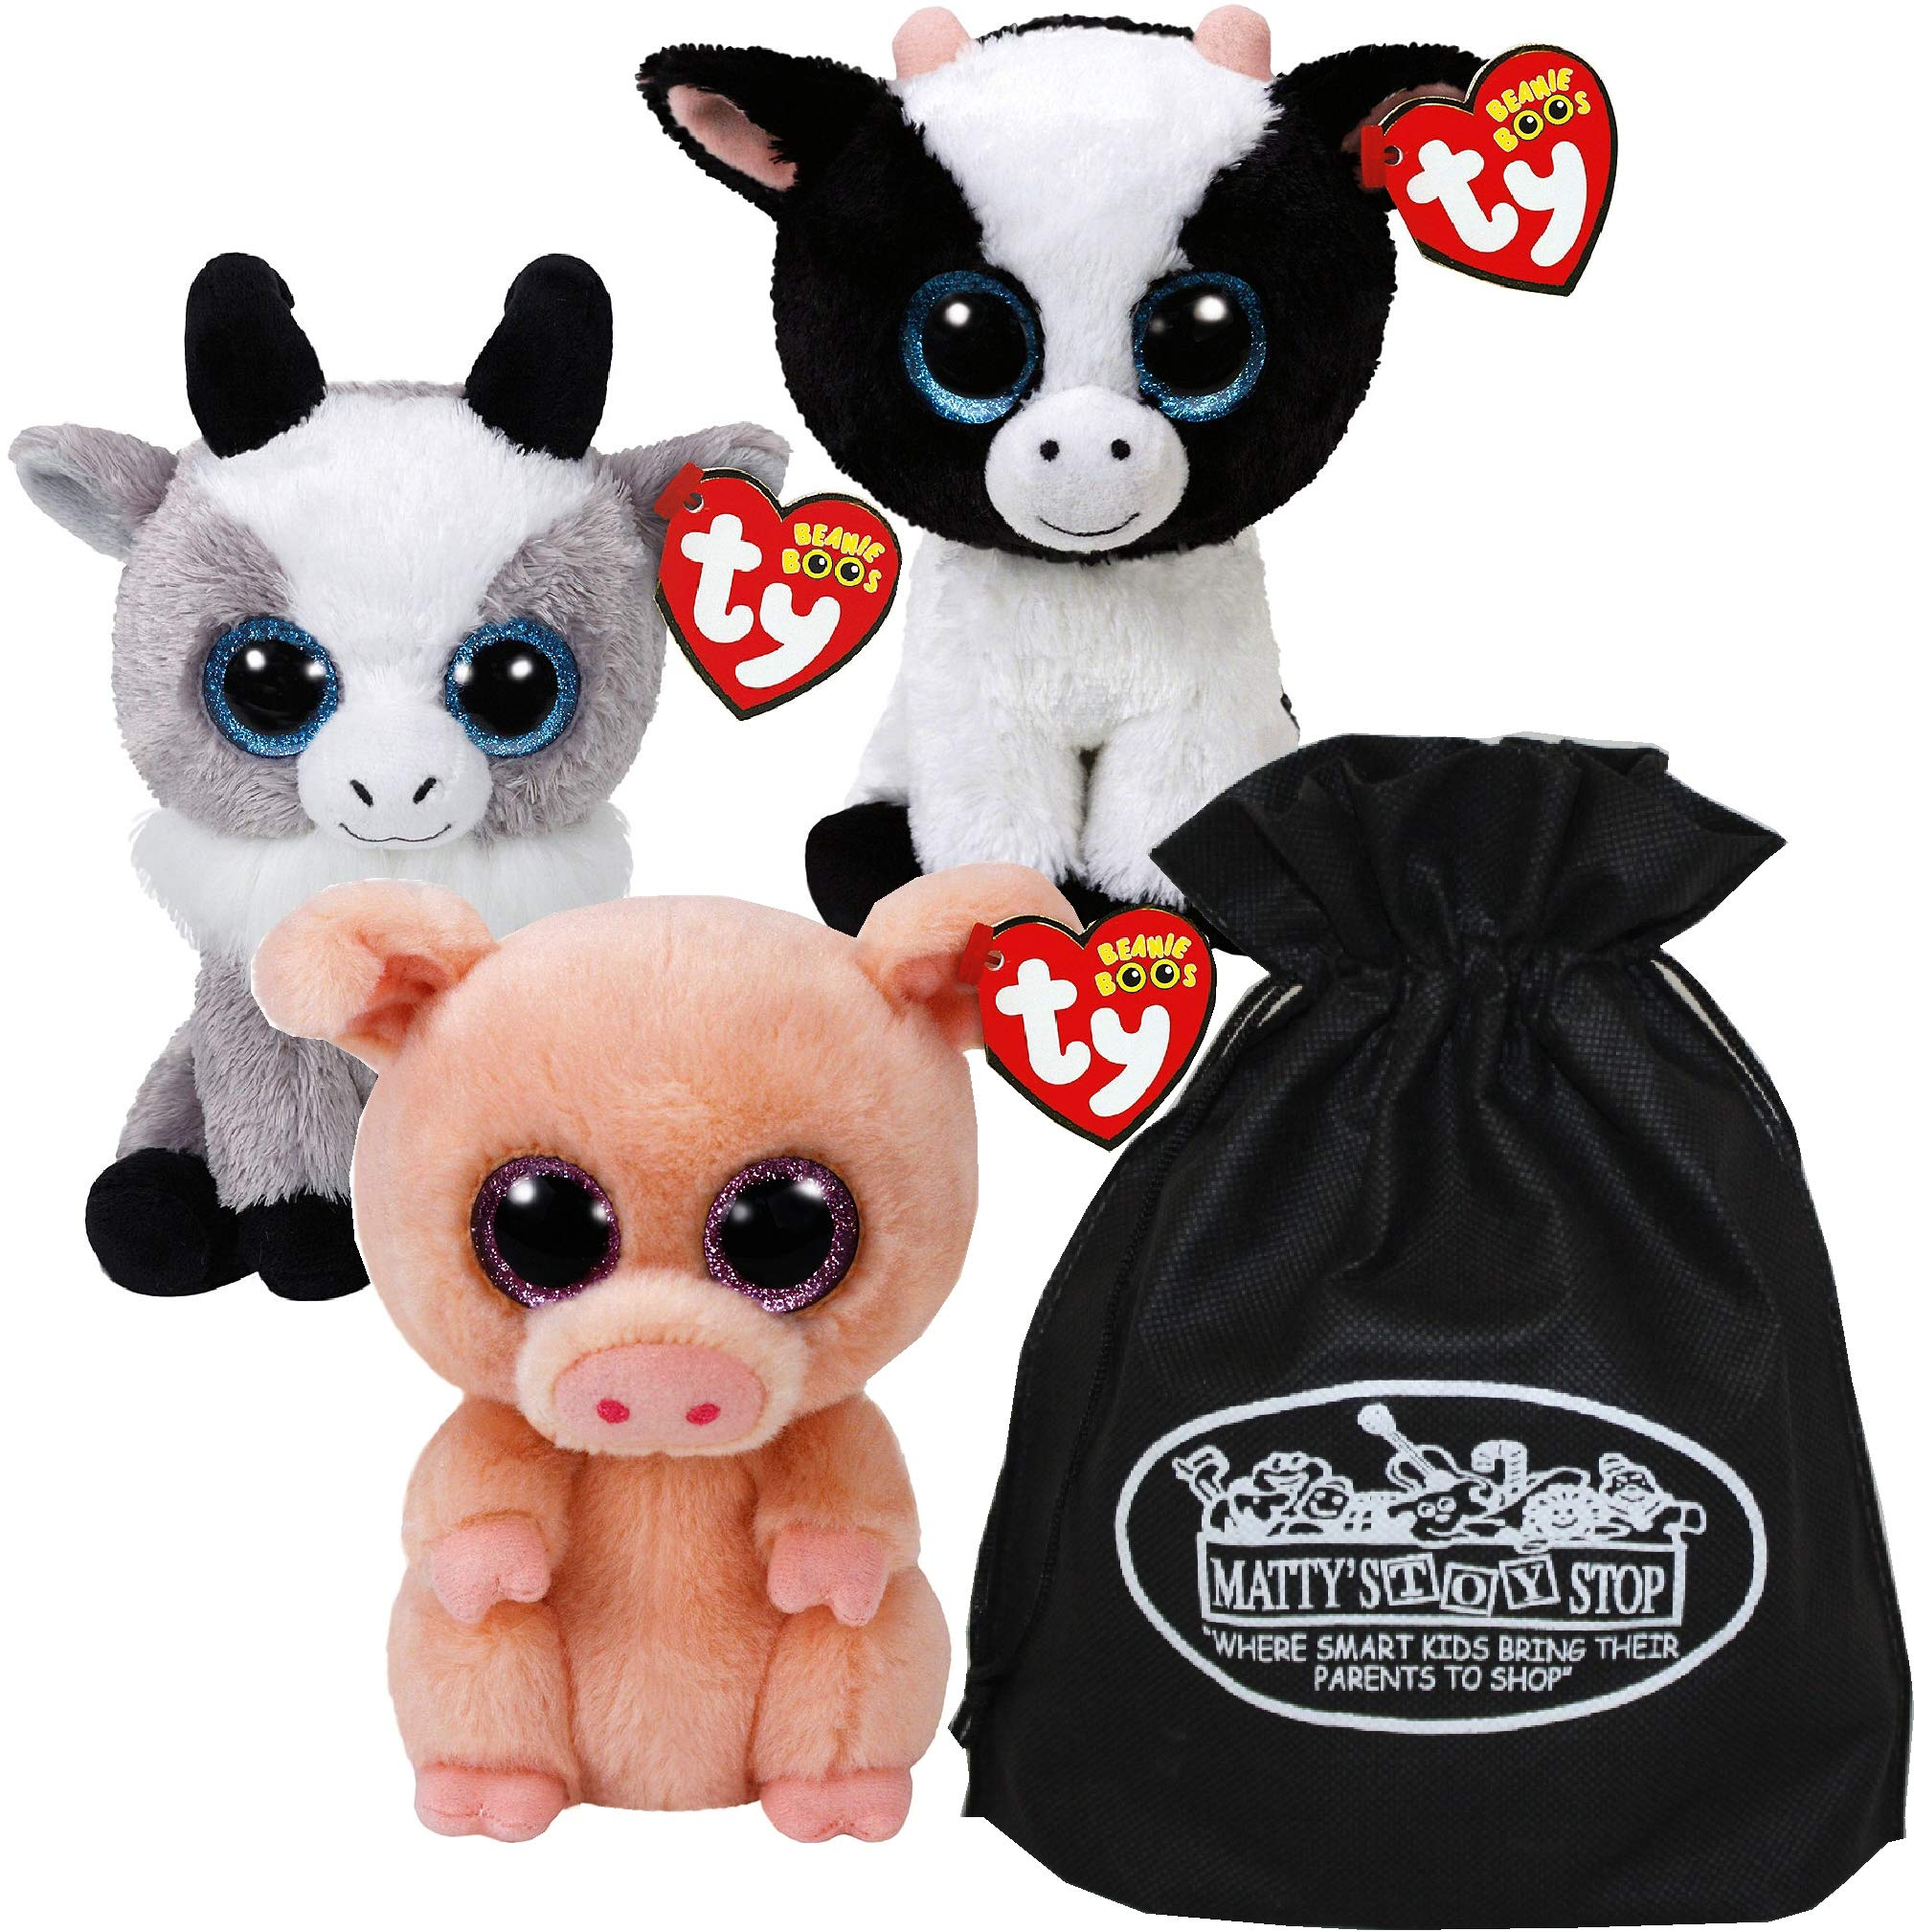 Ty Beanie Boos Butter (Cow), Piggley (Pig) & Gabby (Goat) Gift Set Bundle with Bonus Matty's Toy Stop Storage Bag - 3 Pack by Ty Beanie Boos